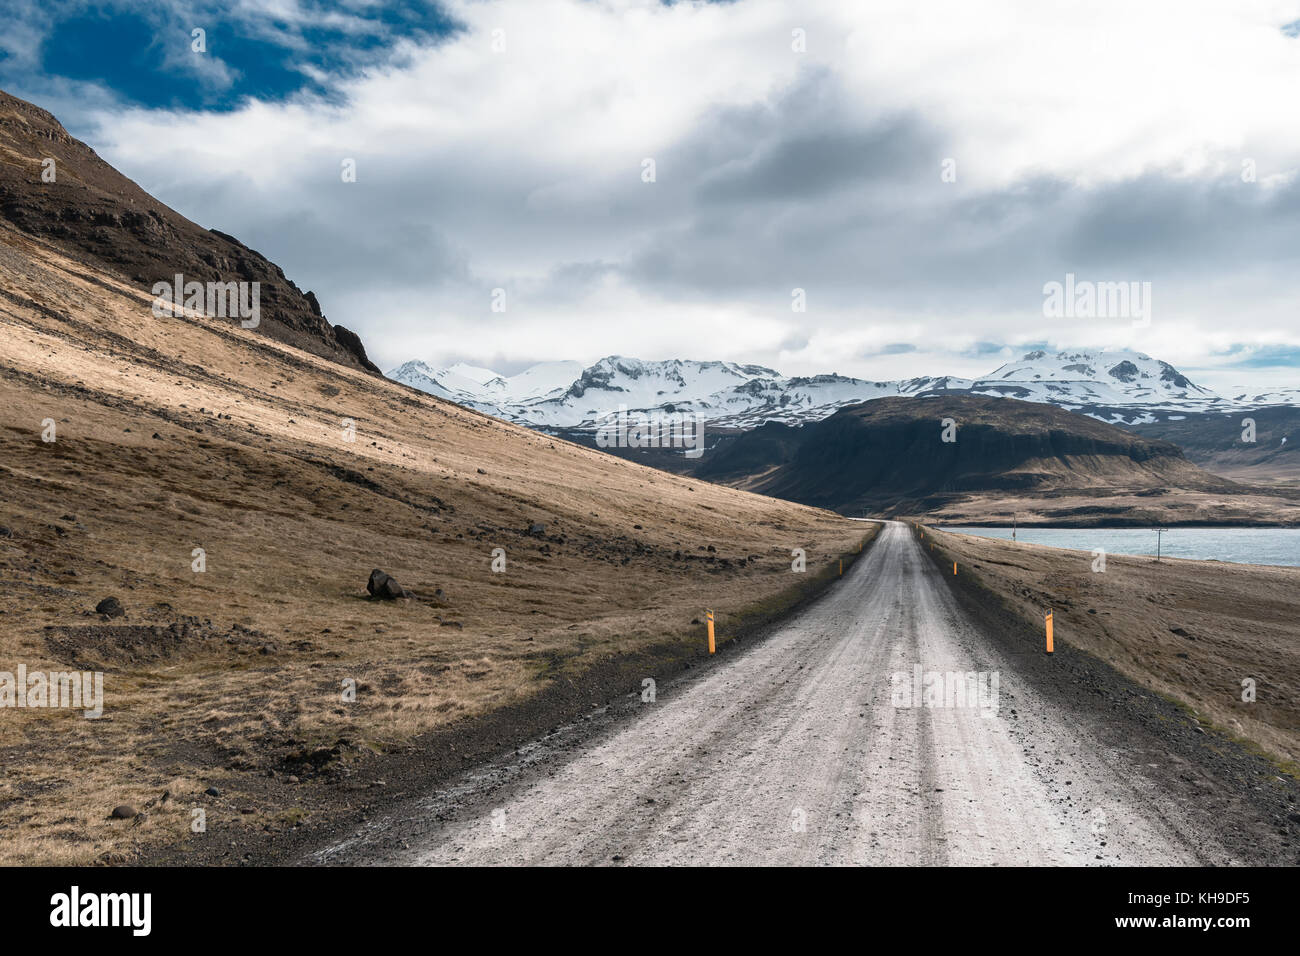 Looking down a dirt road in Iceland - Stock Image